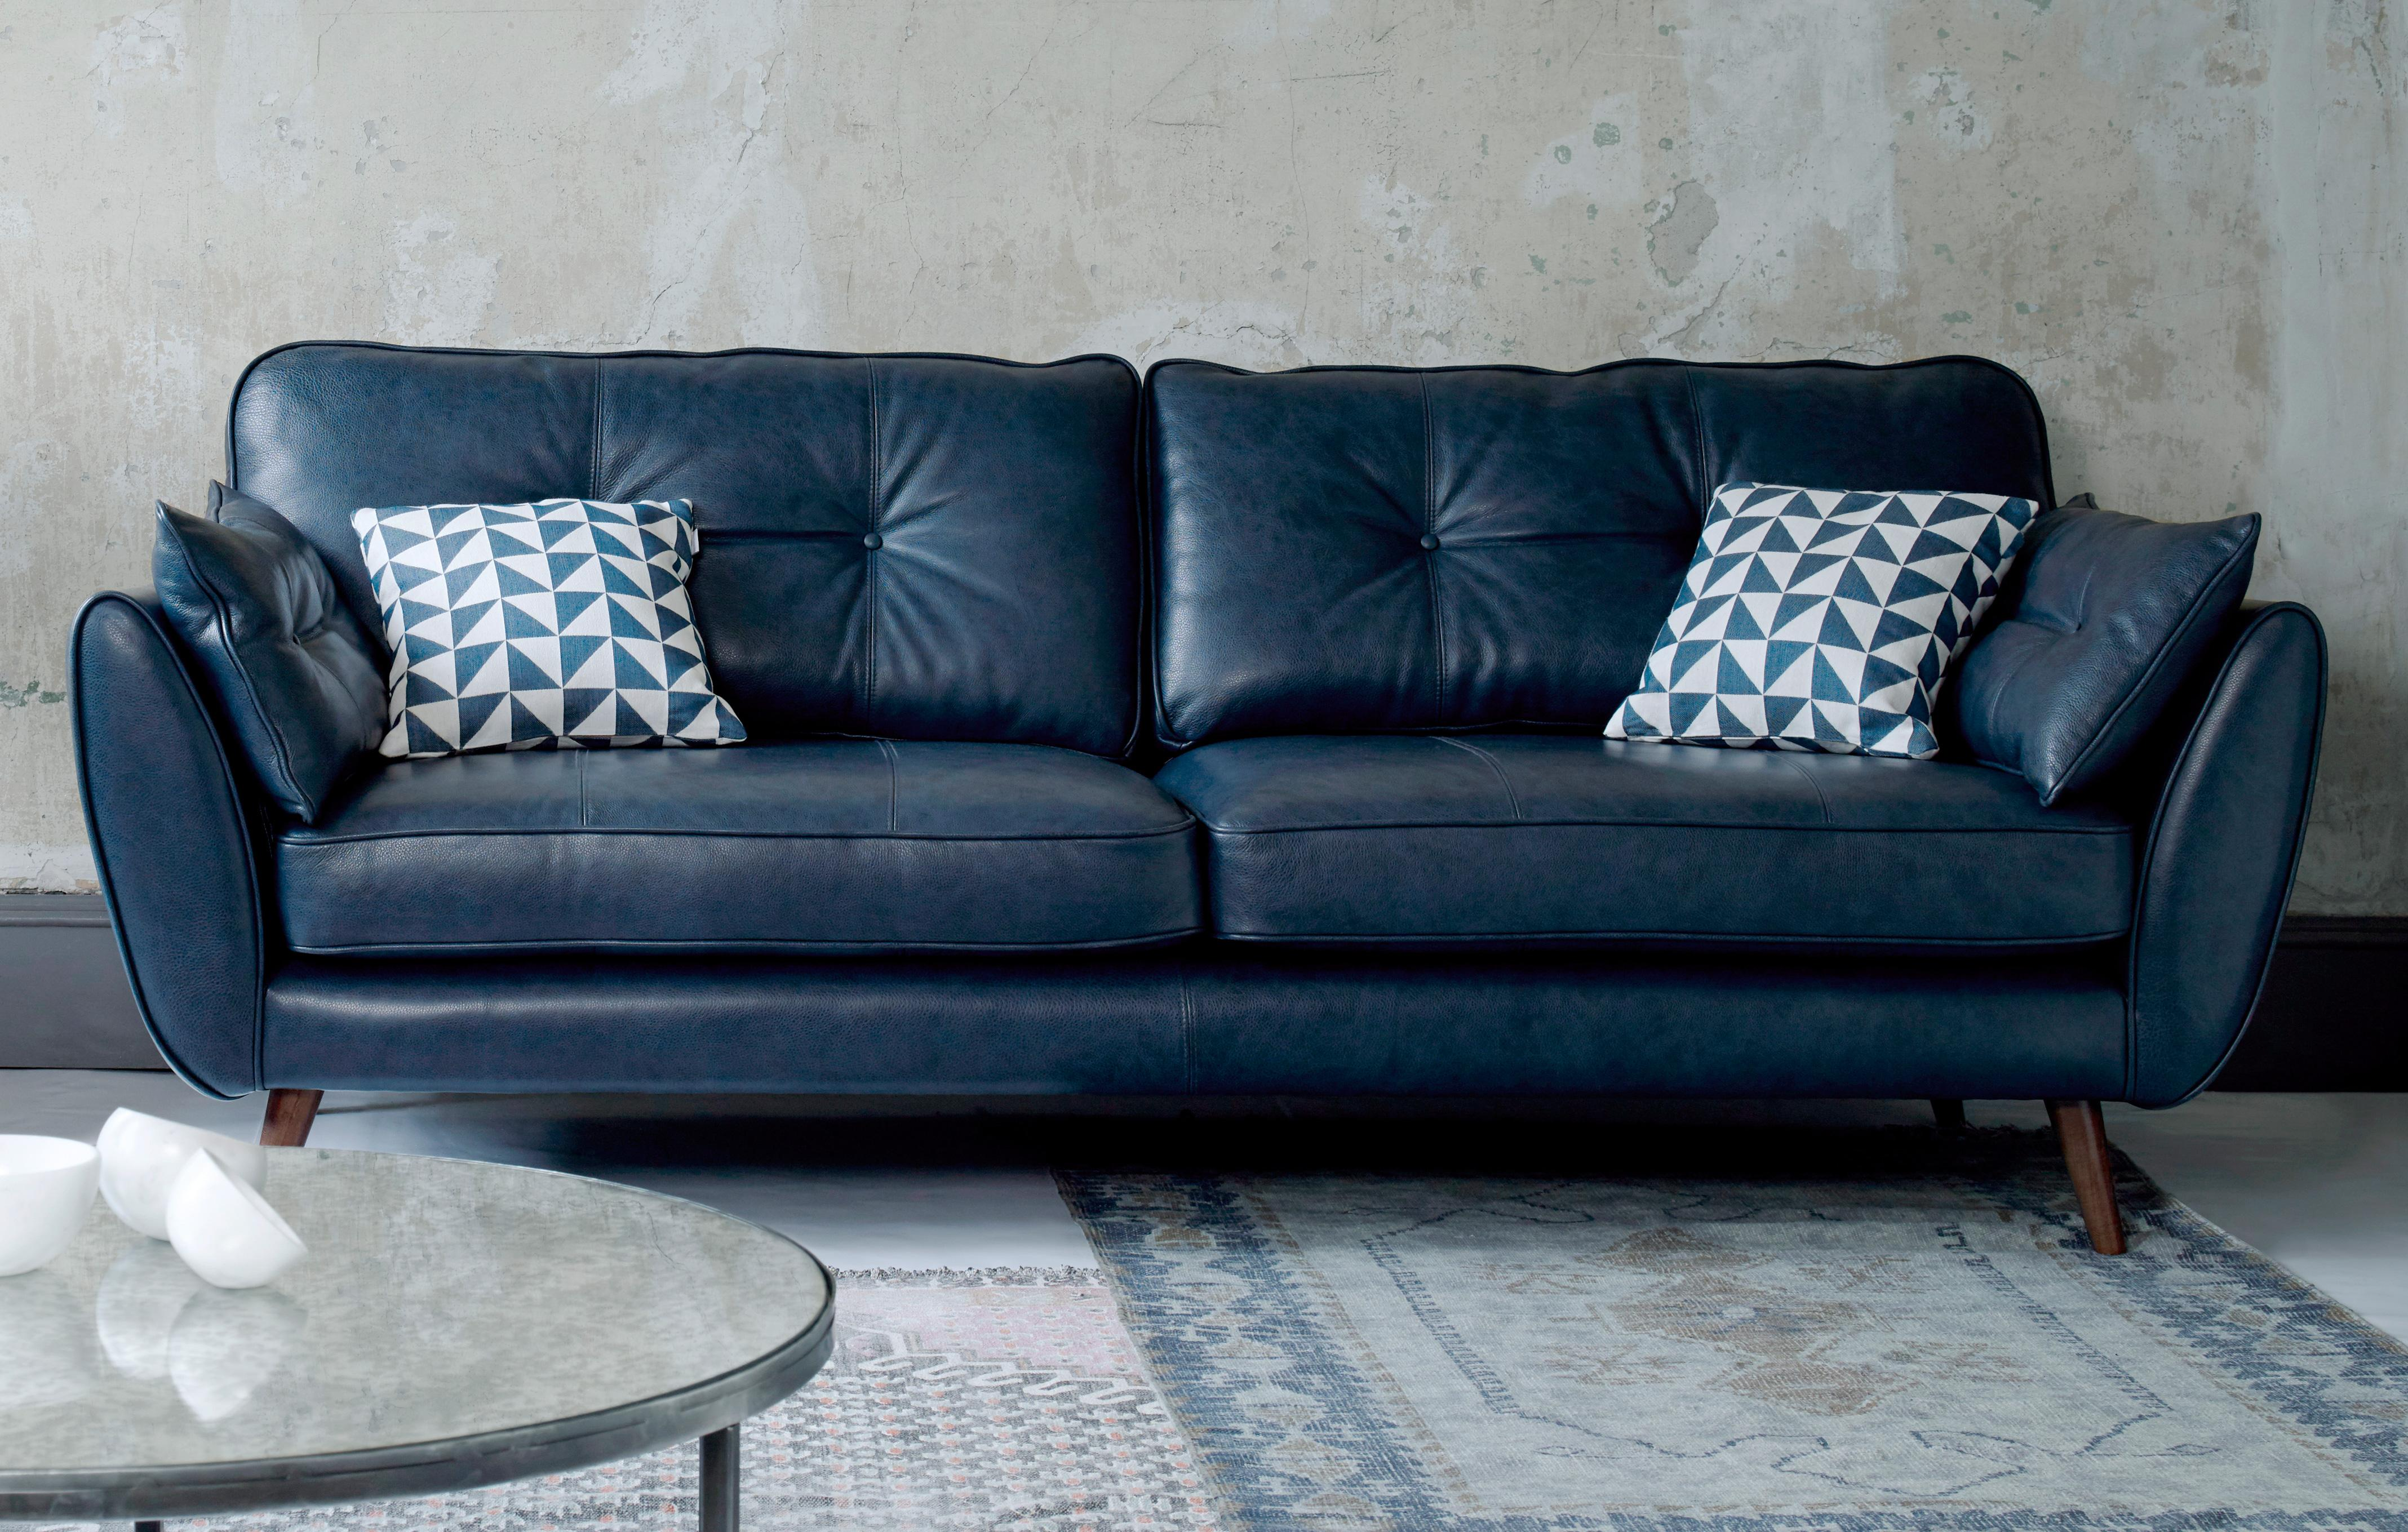 2 seater leather sofas at dfs dark blue velvet sofa living room in a range of styles |